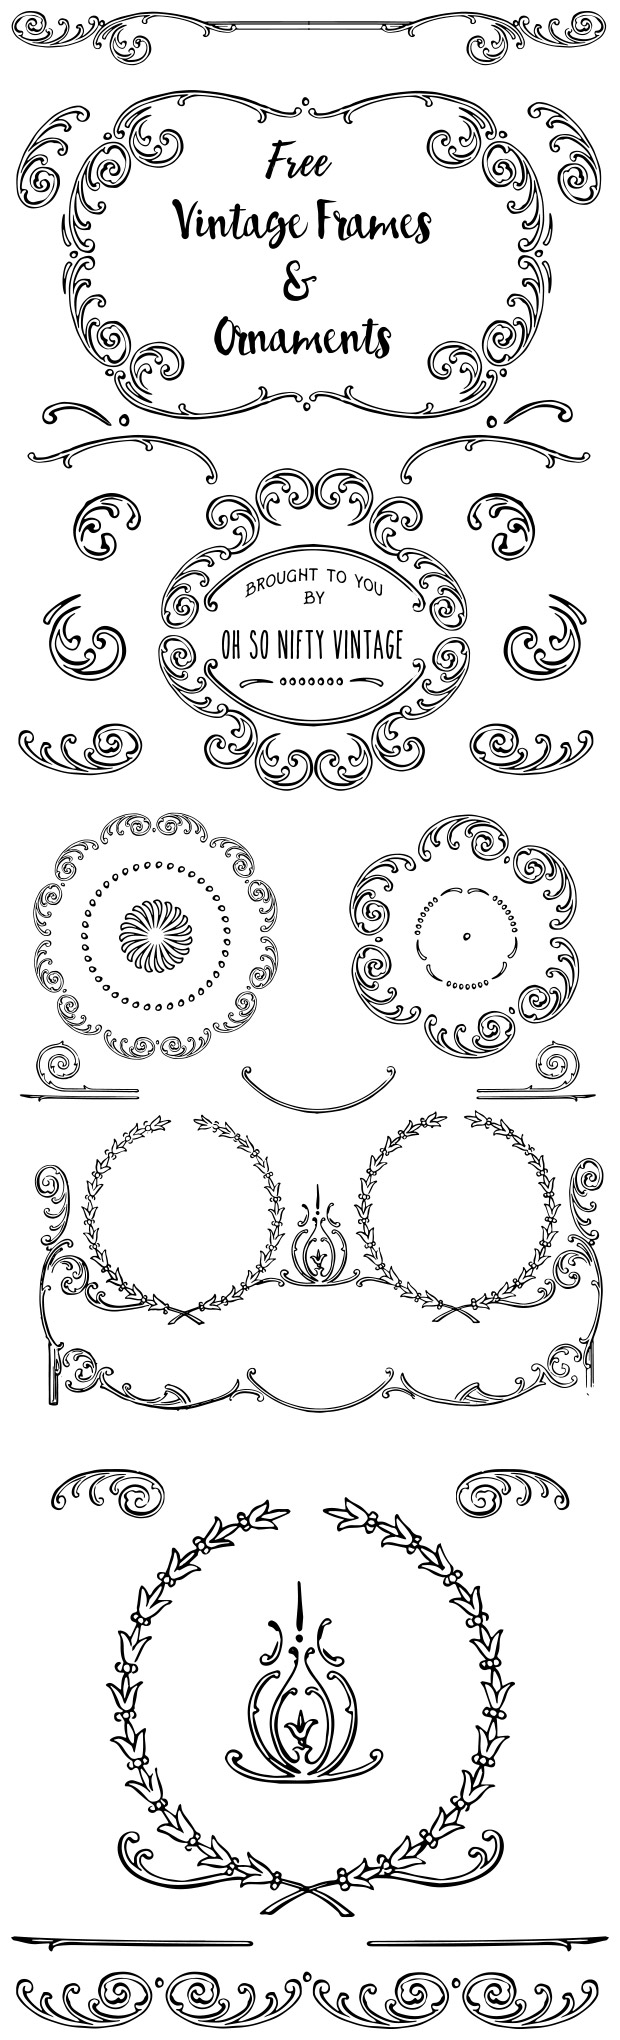 VGOSN_Free_Vintage_Frames_Ornaments_prev_2